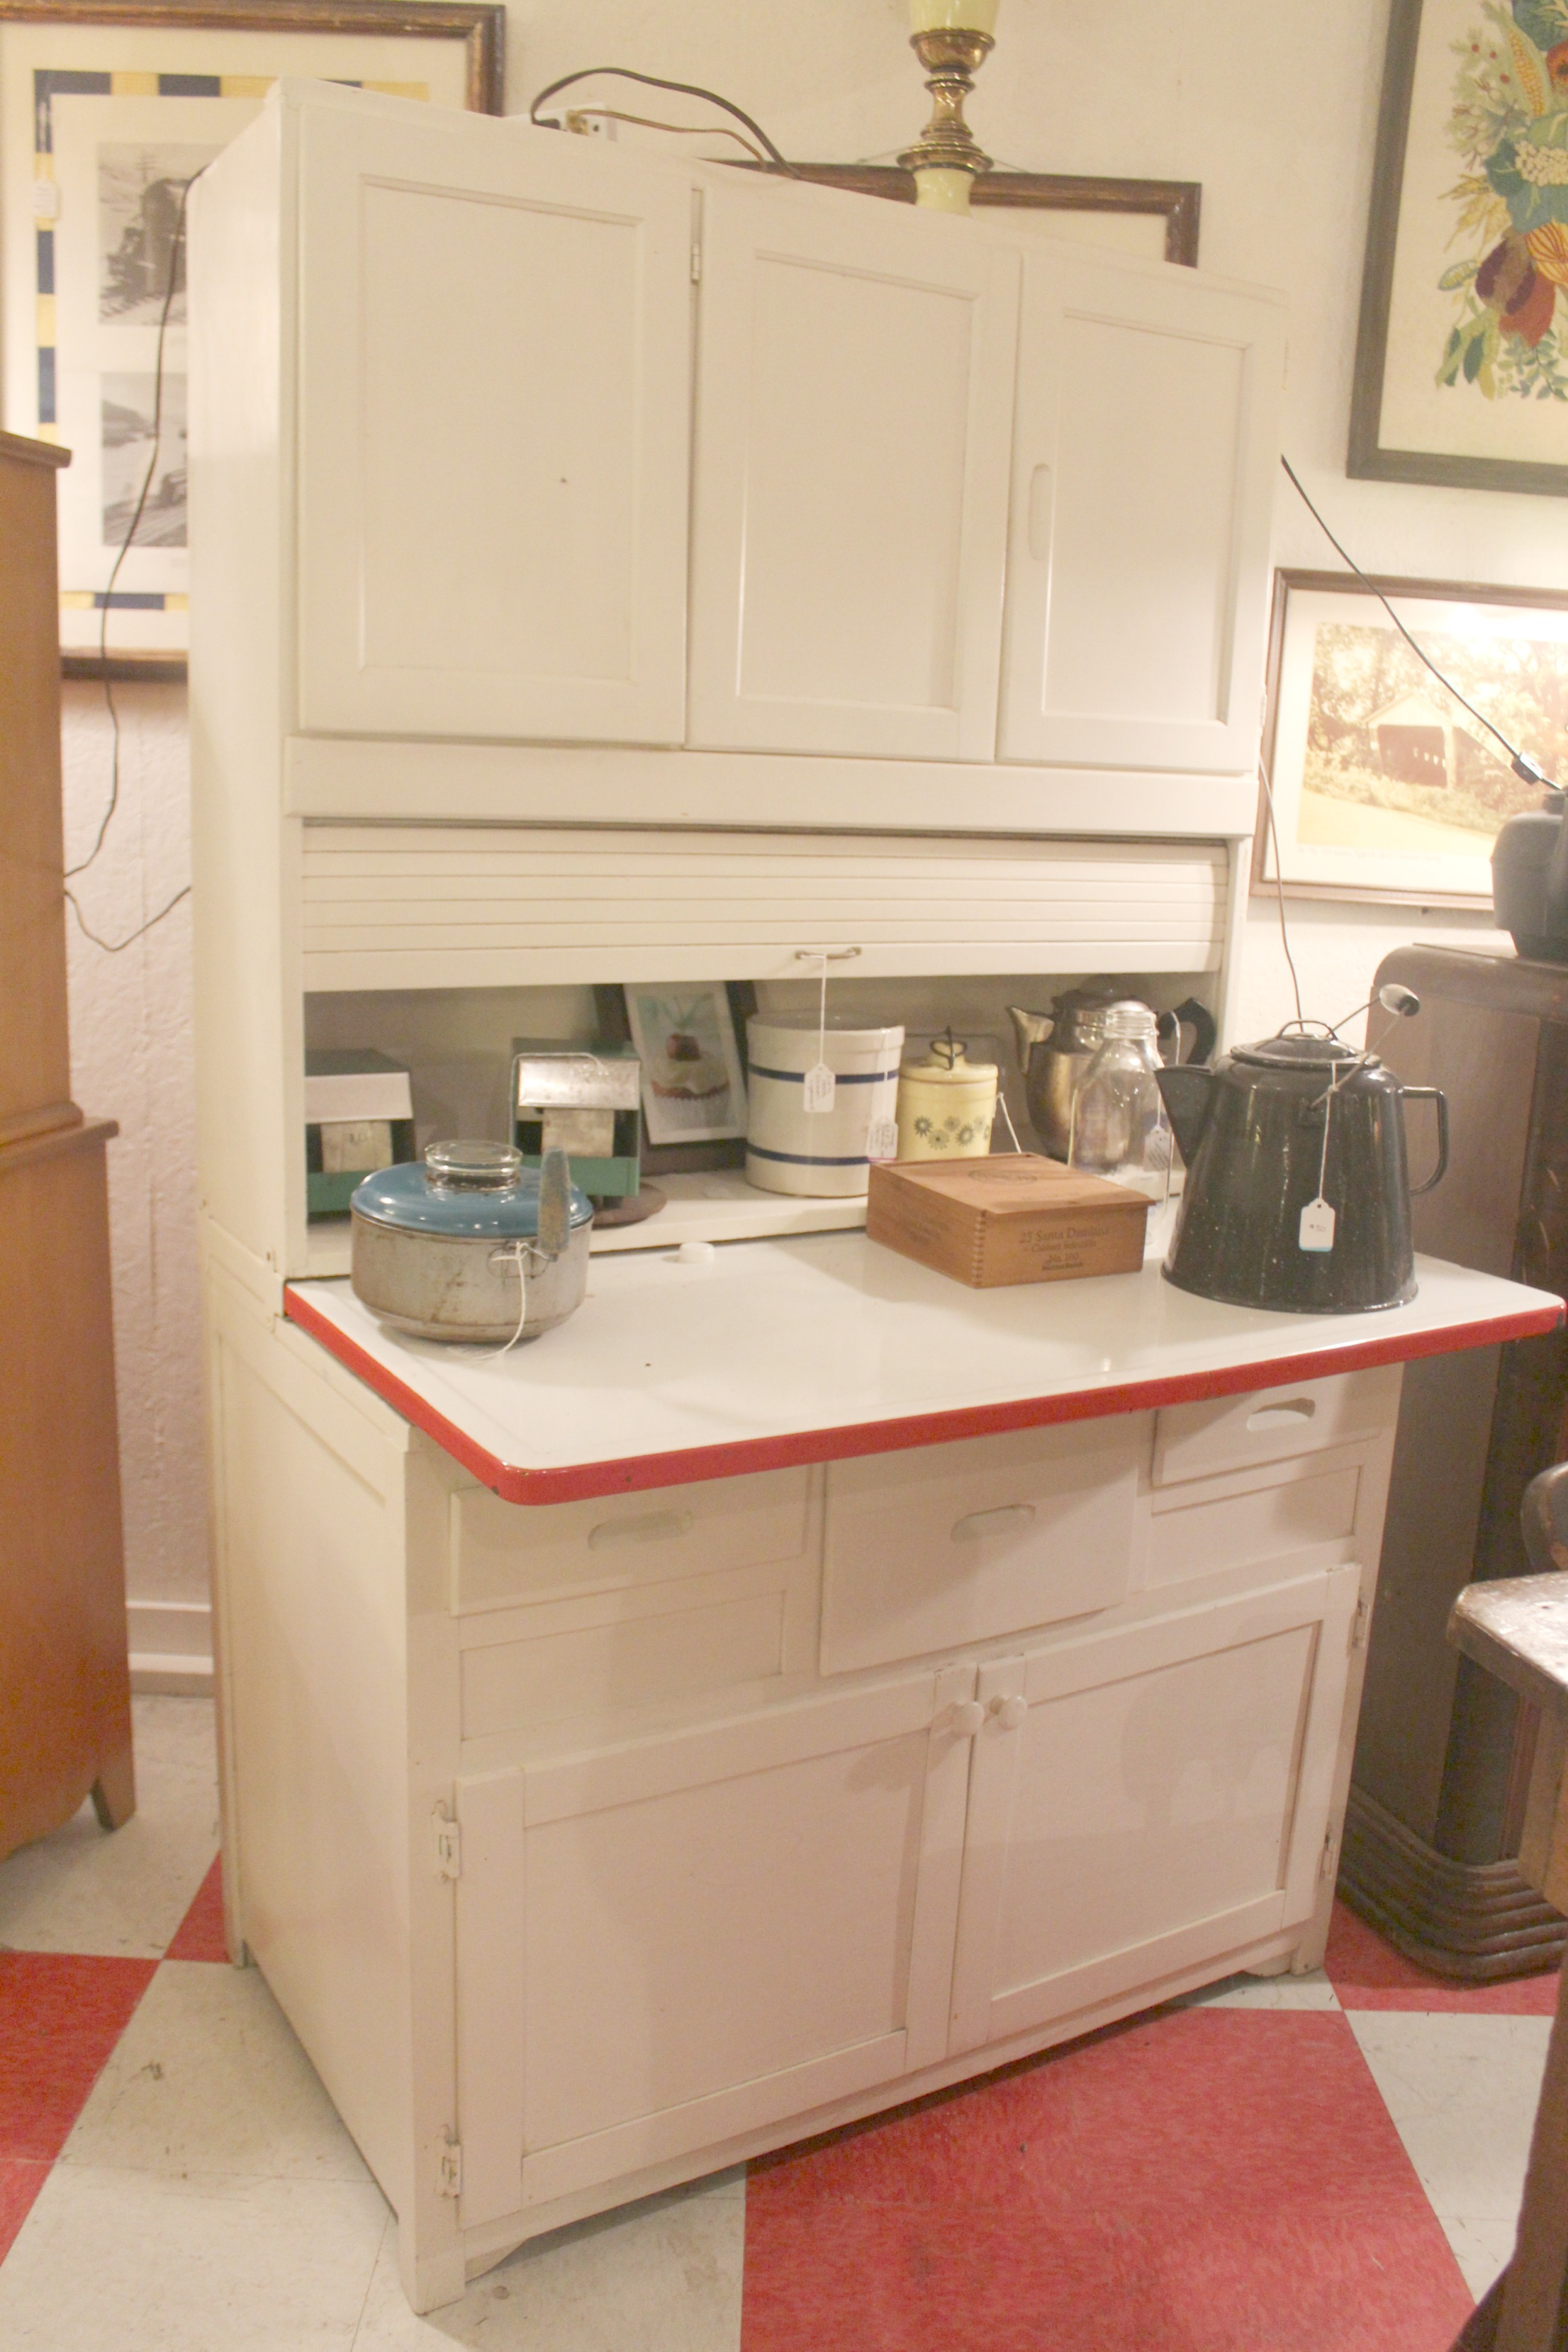 Sellers Kitchen Cabinets | Gene's Trading Post